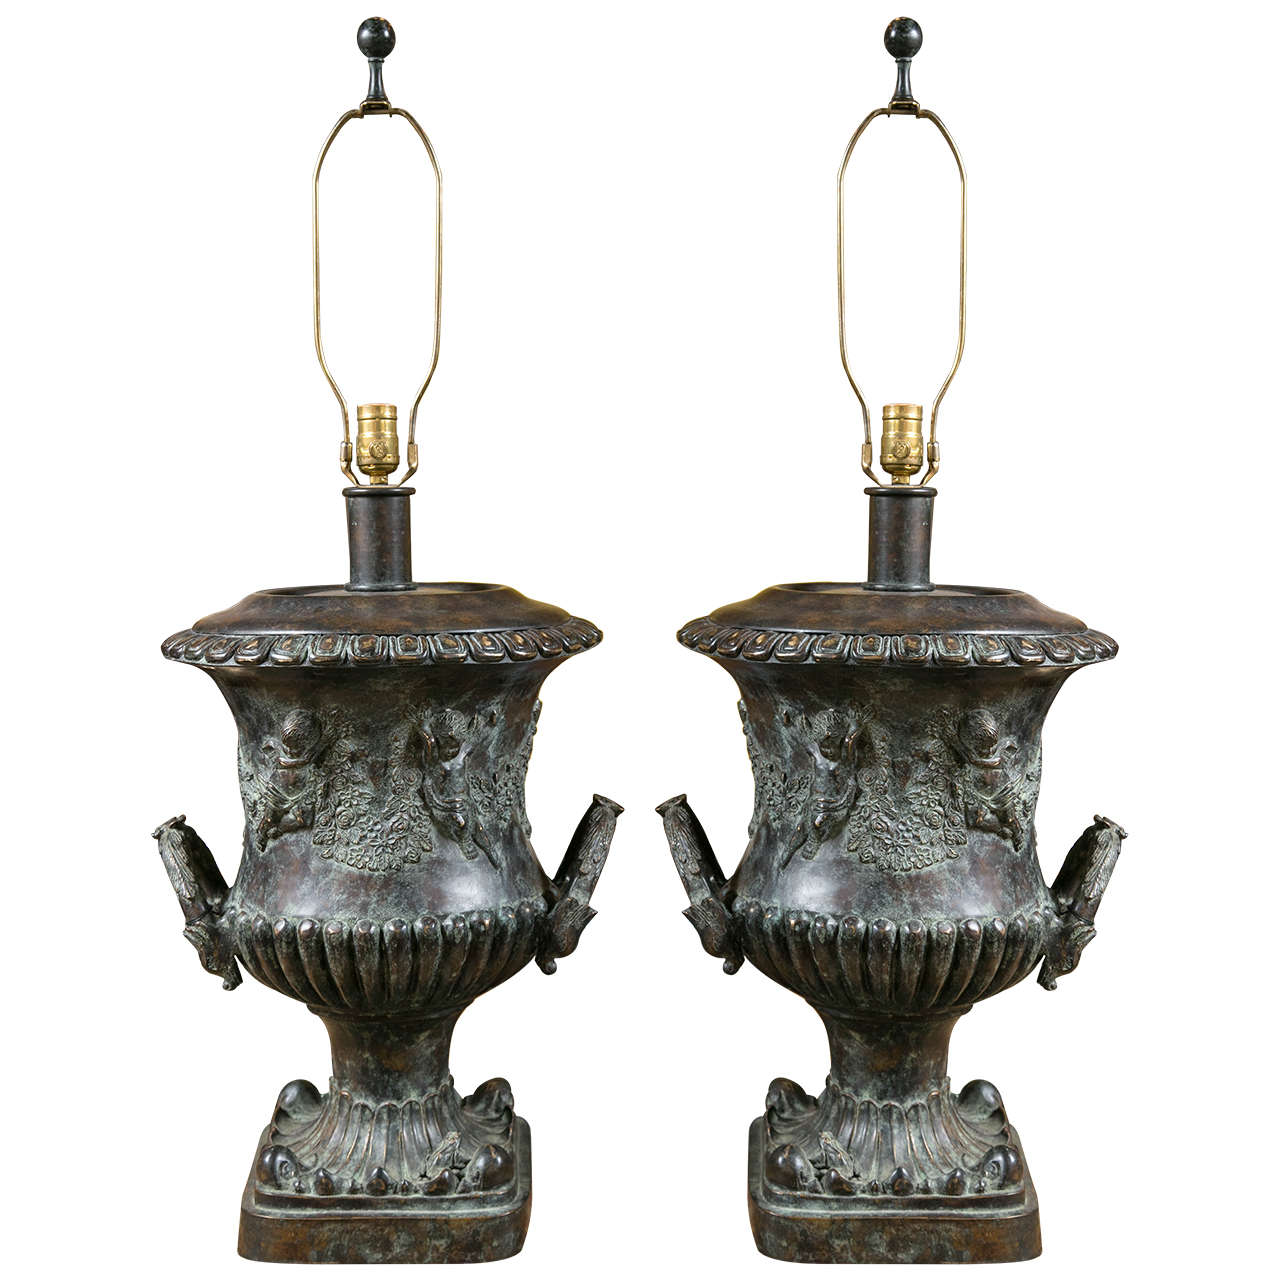 Pair of Cast Bronze Urn Lamps by Maitland Smith For Sale at 1stdibs